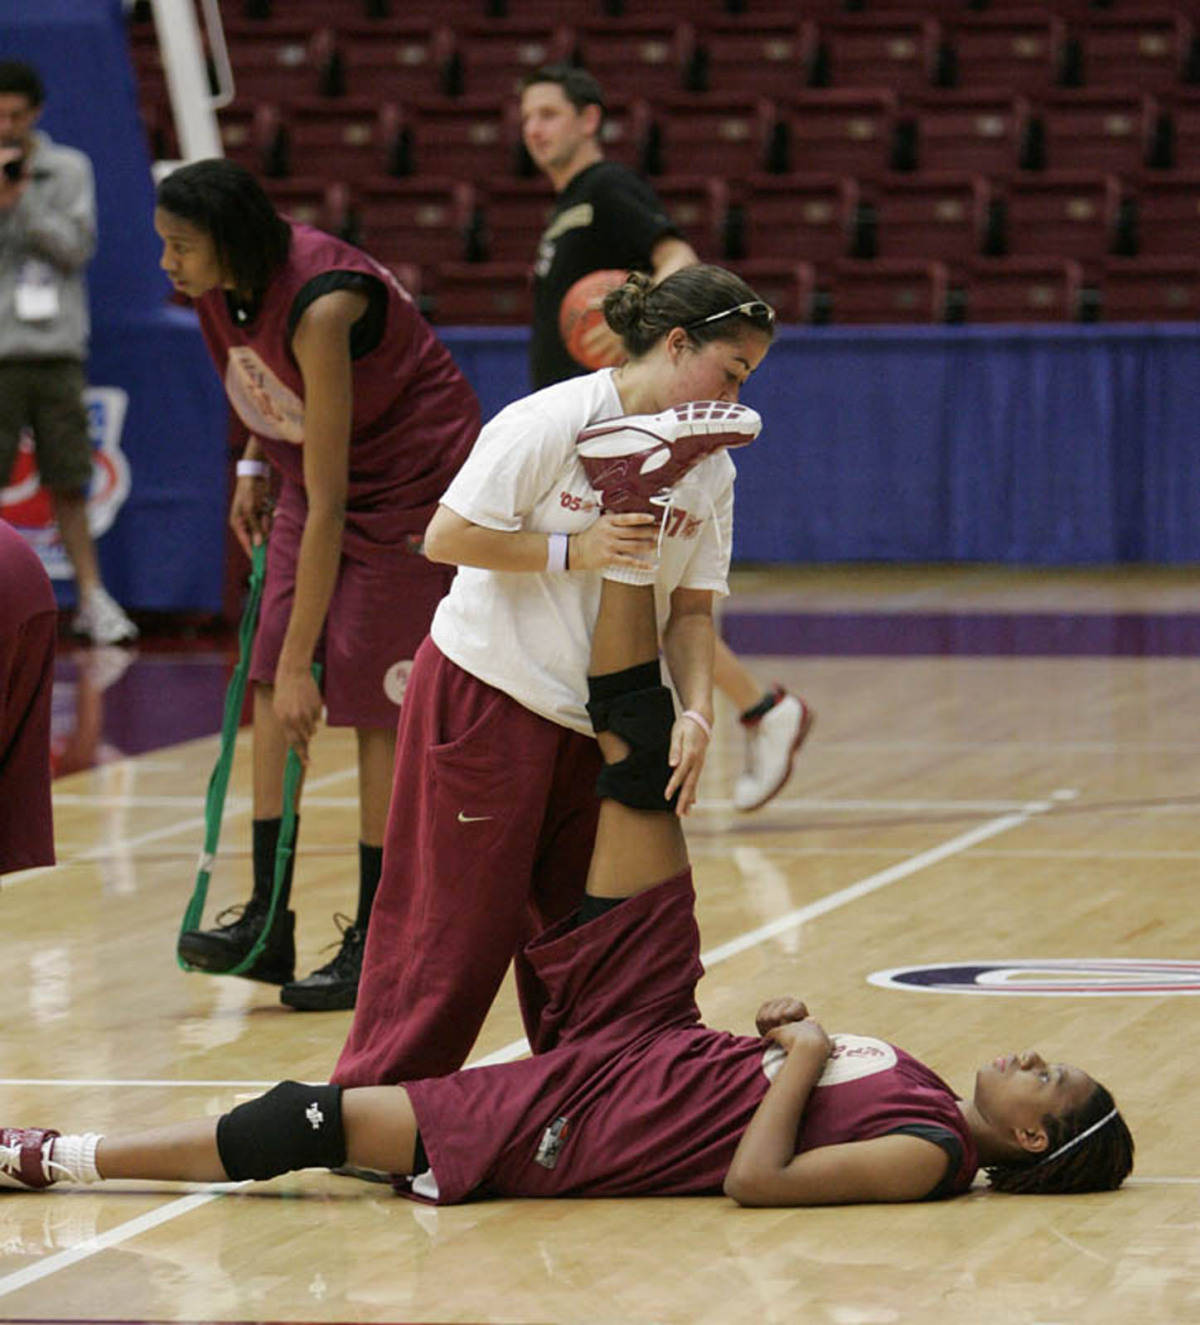 Graduate Assistant Theodora Scott stretch out a player.